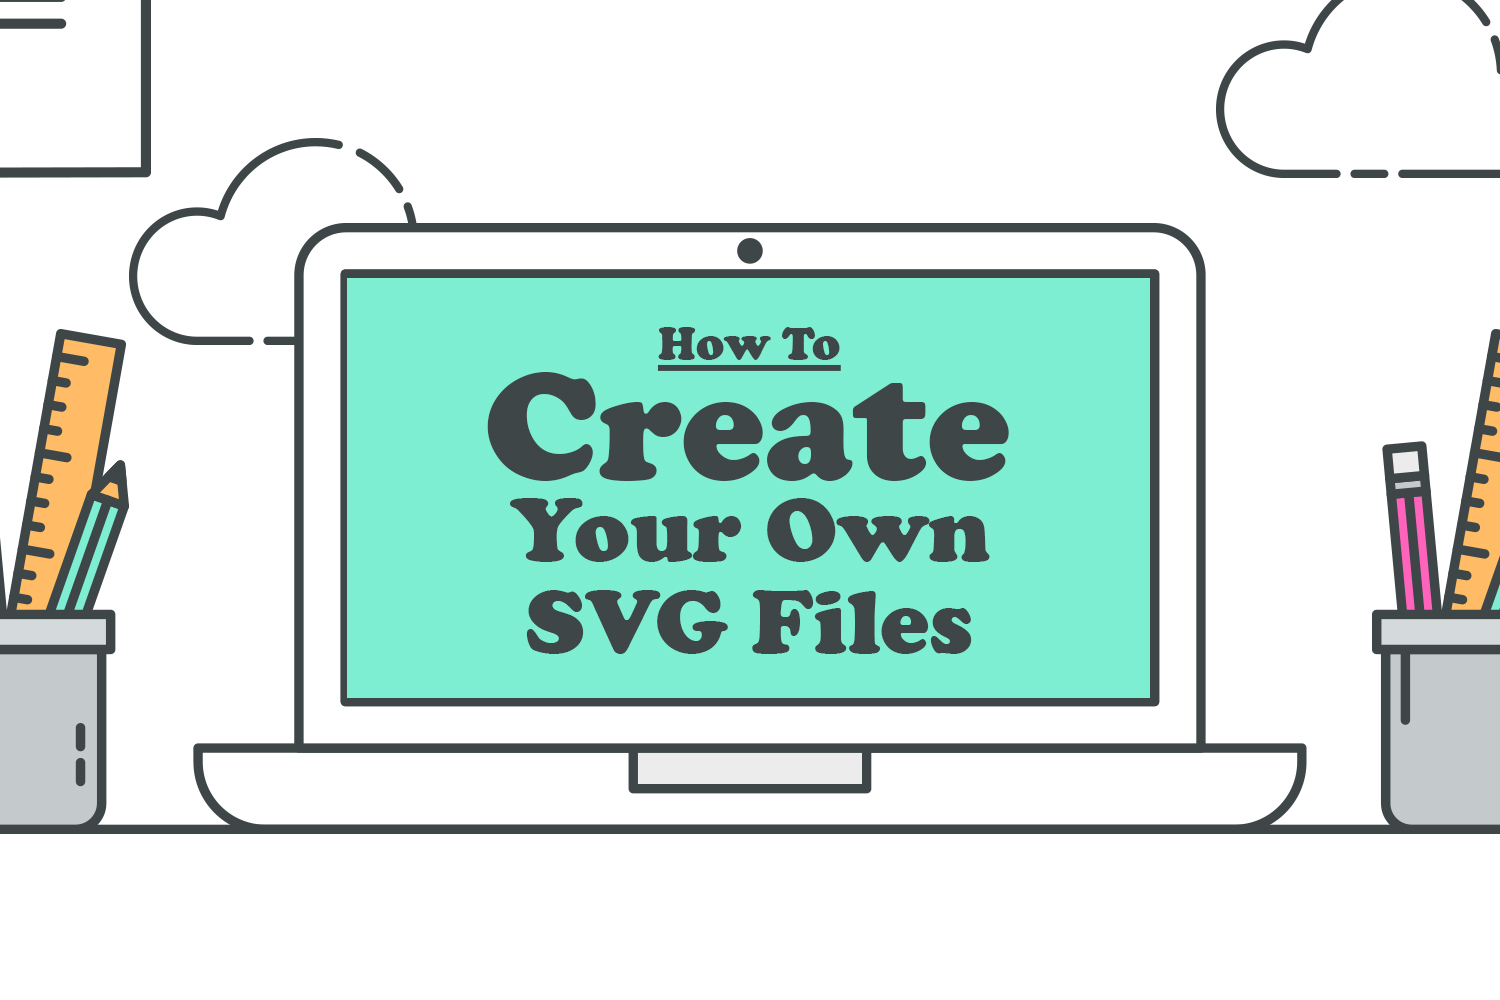 How To Create Your Own SVG Files